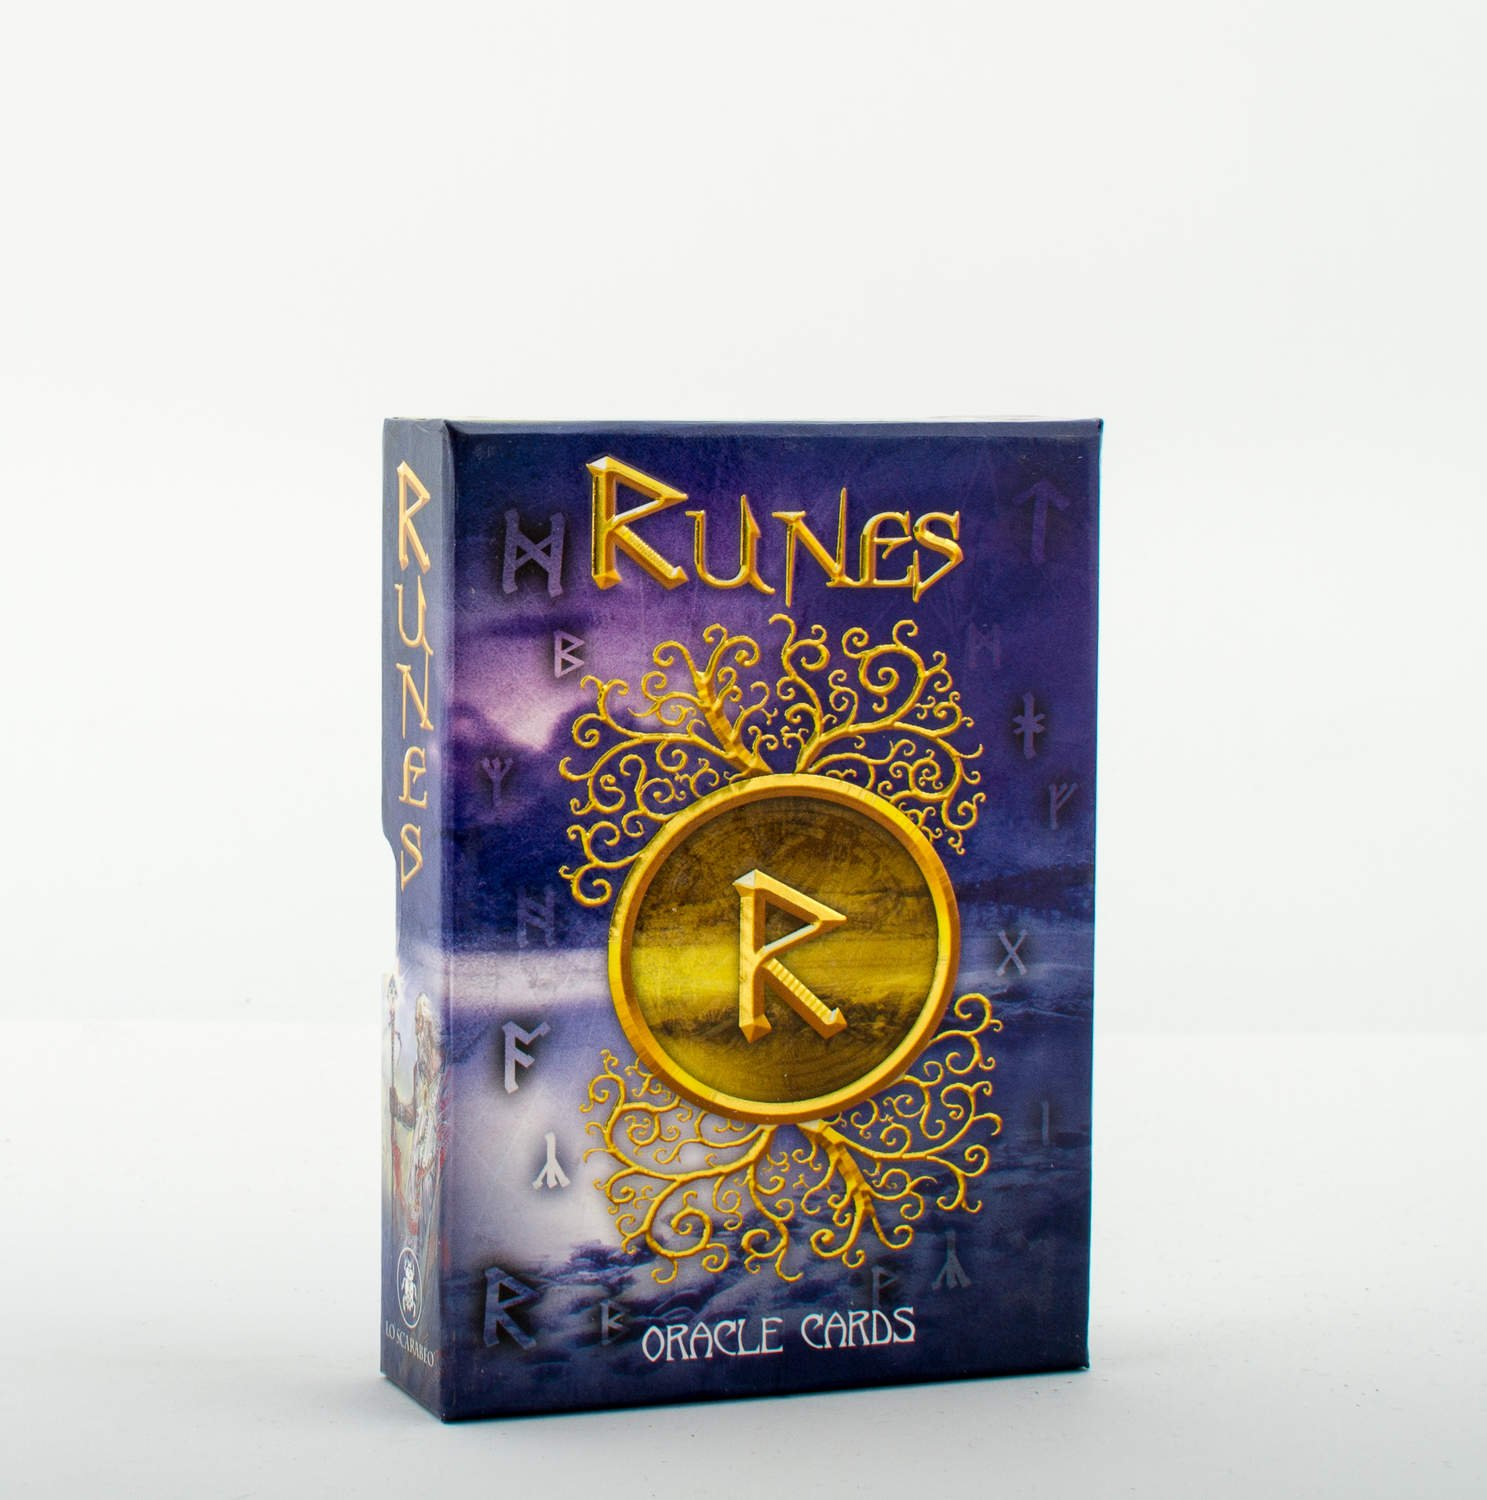 Runes Oracle Cards 9788865272091